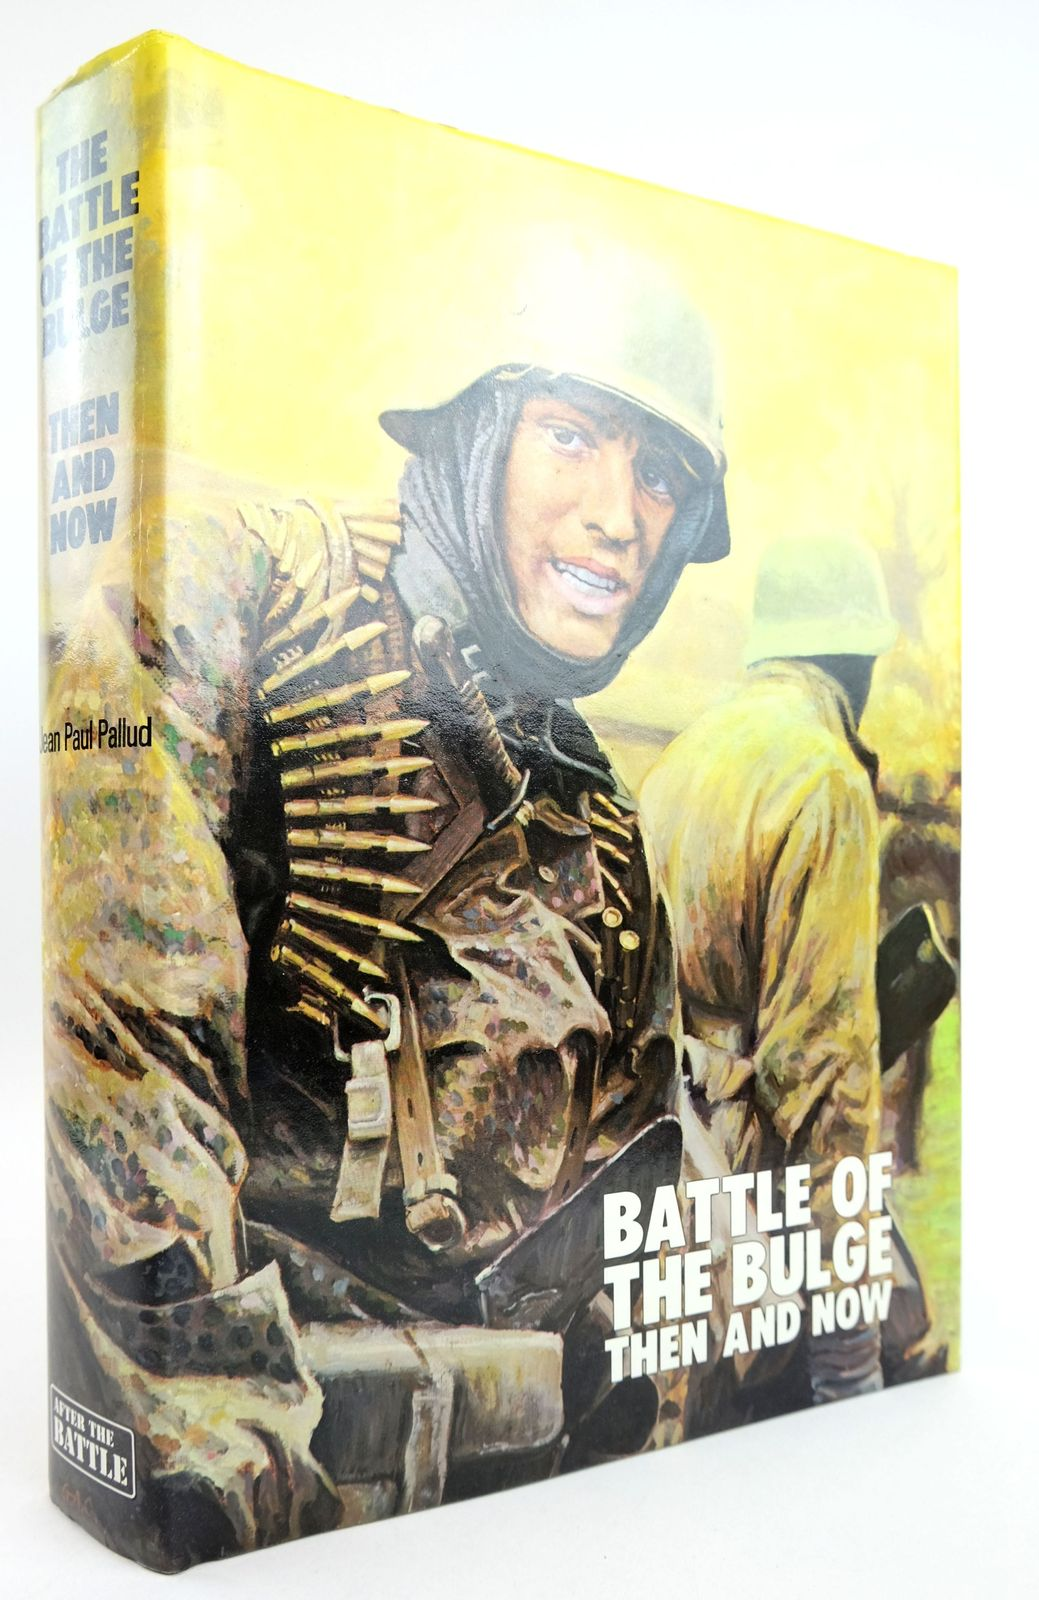 Photo of BATTLE OF THE BULGE THEN AND NOW written by Pallud, Jean Paul published by Battle of Britain Prints International Ltd. (STOCK CODE: 1819018)  for sale by Stella & Rose's Books